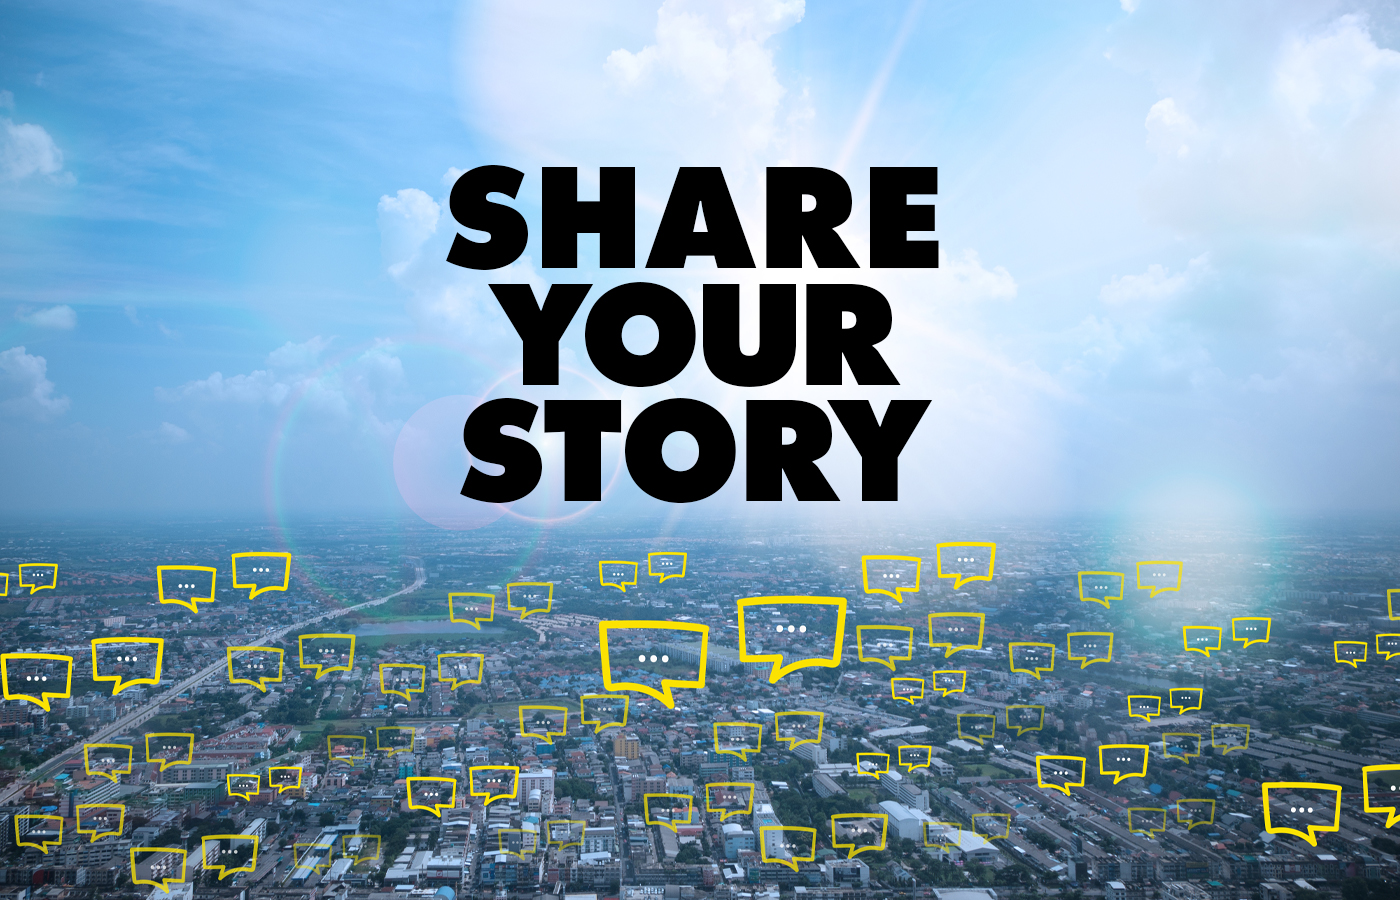 SEND IN YOUR STORY!